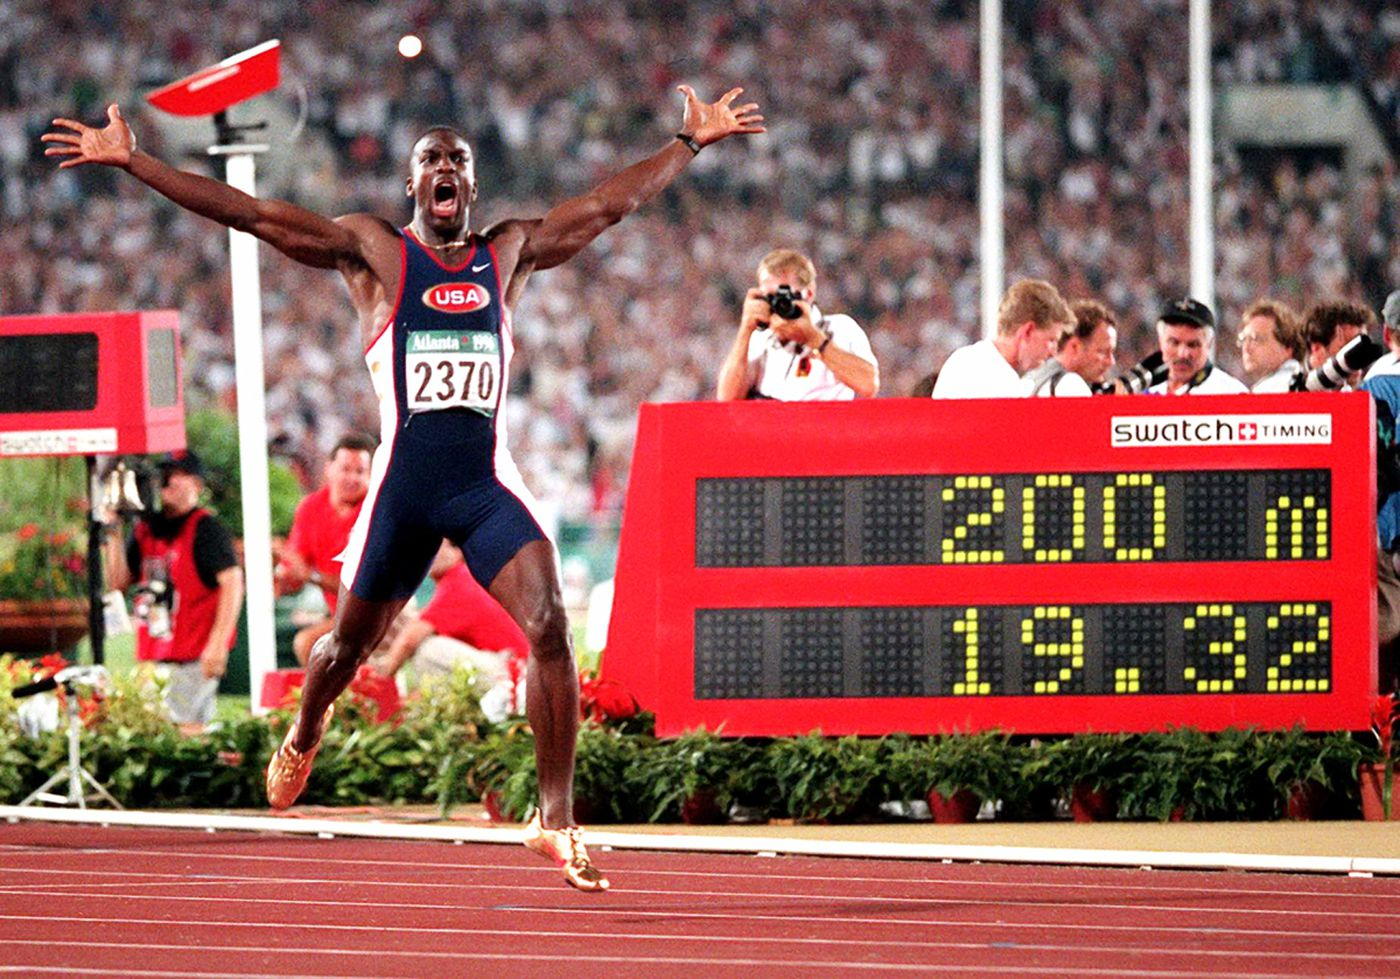 Michael Johnson Shatters World Record In 200M At 1996